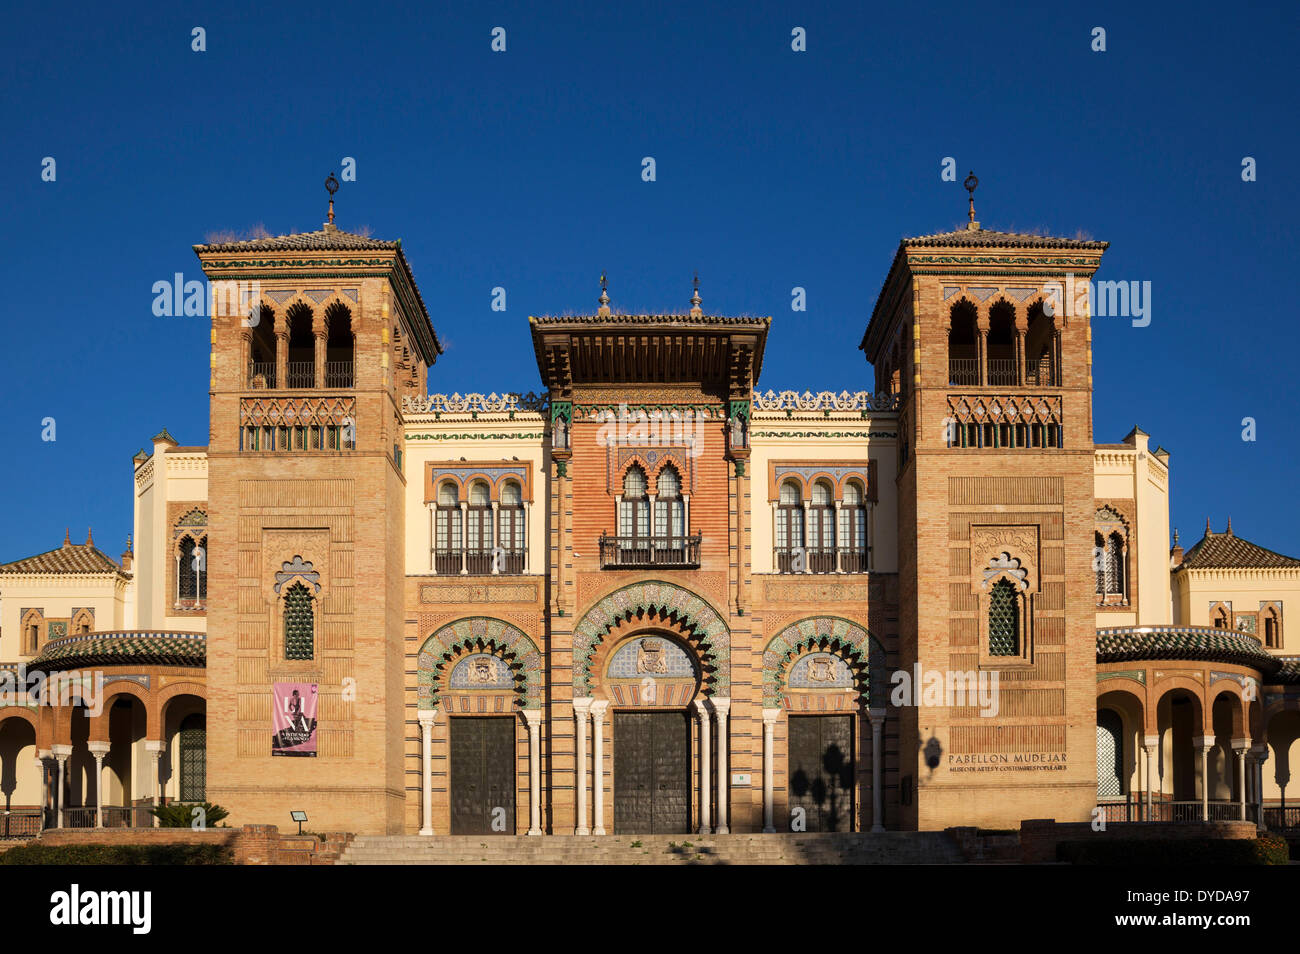 The Mudéjar Pavilion houses the Popular Arts Museum, Seville, Seville Province, Andalusia, Spain - Stock Image